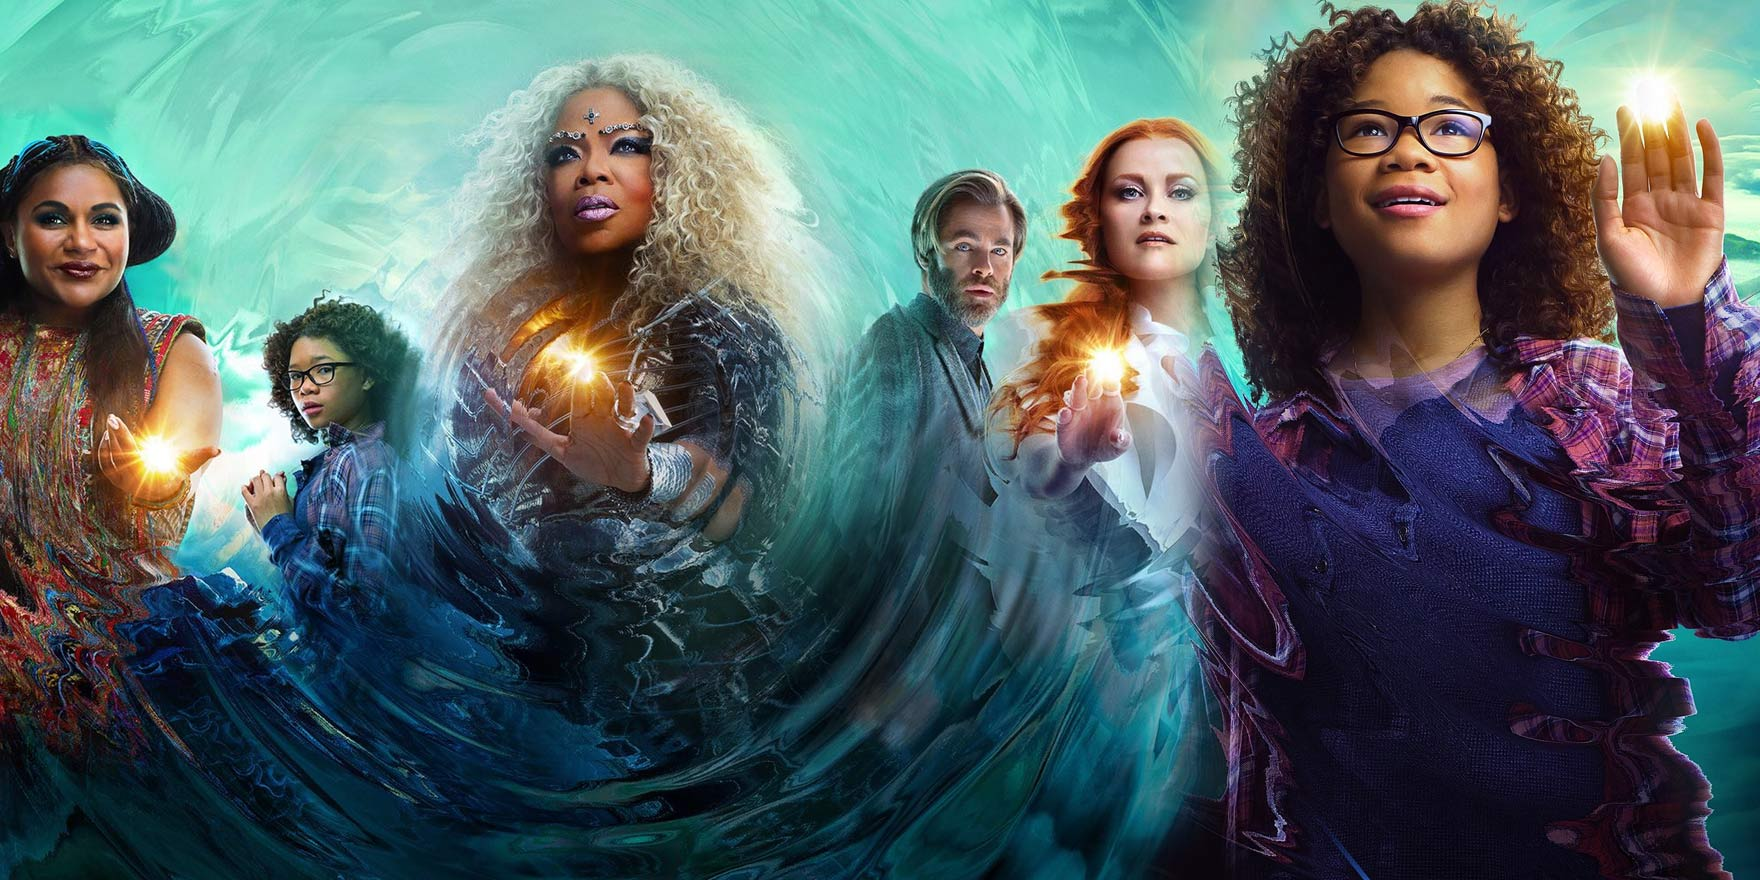 A Wrinkle in Time - Header Image